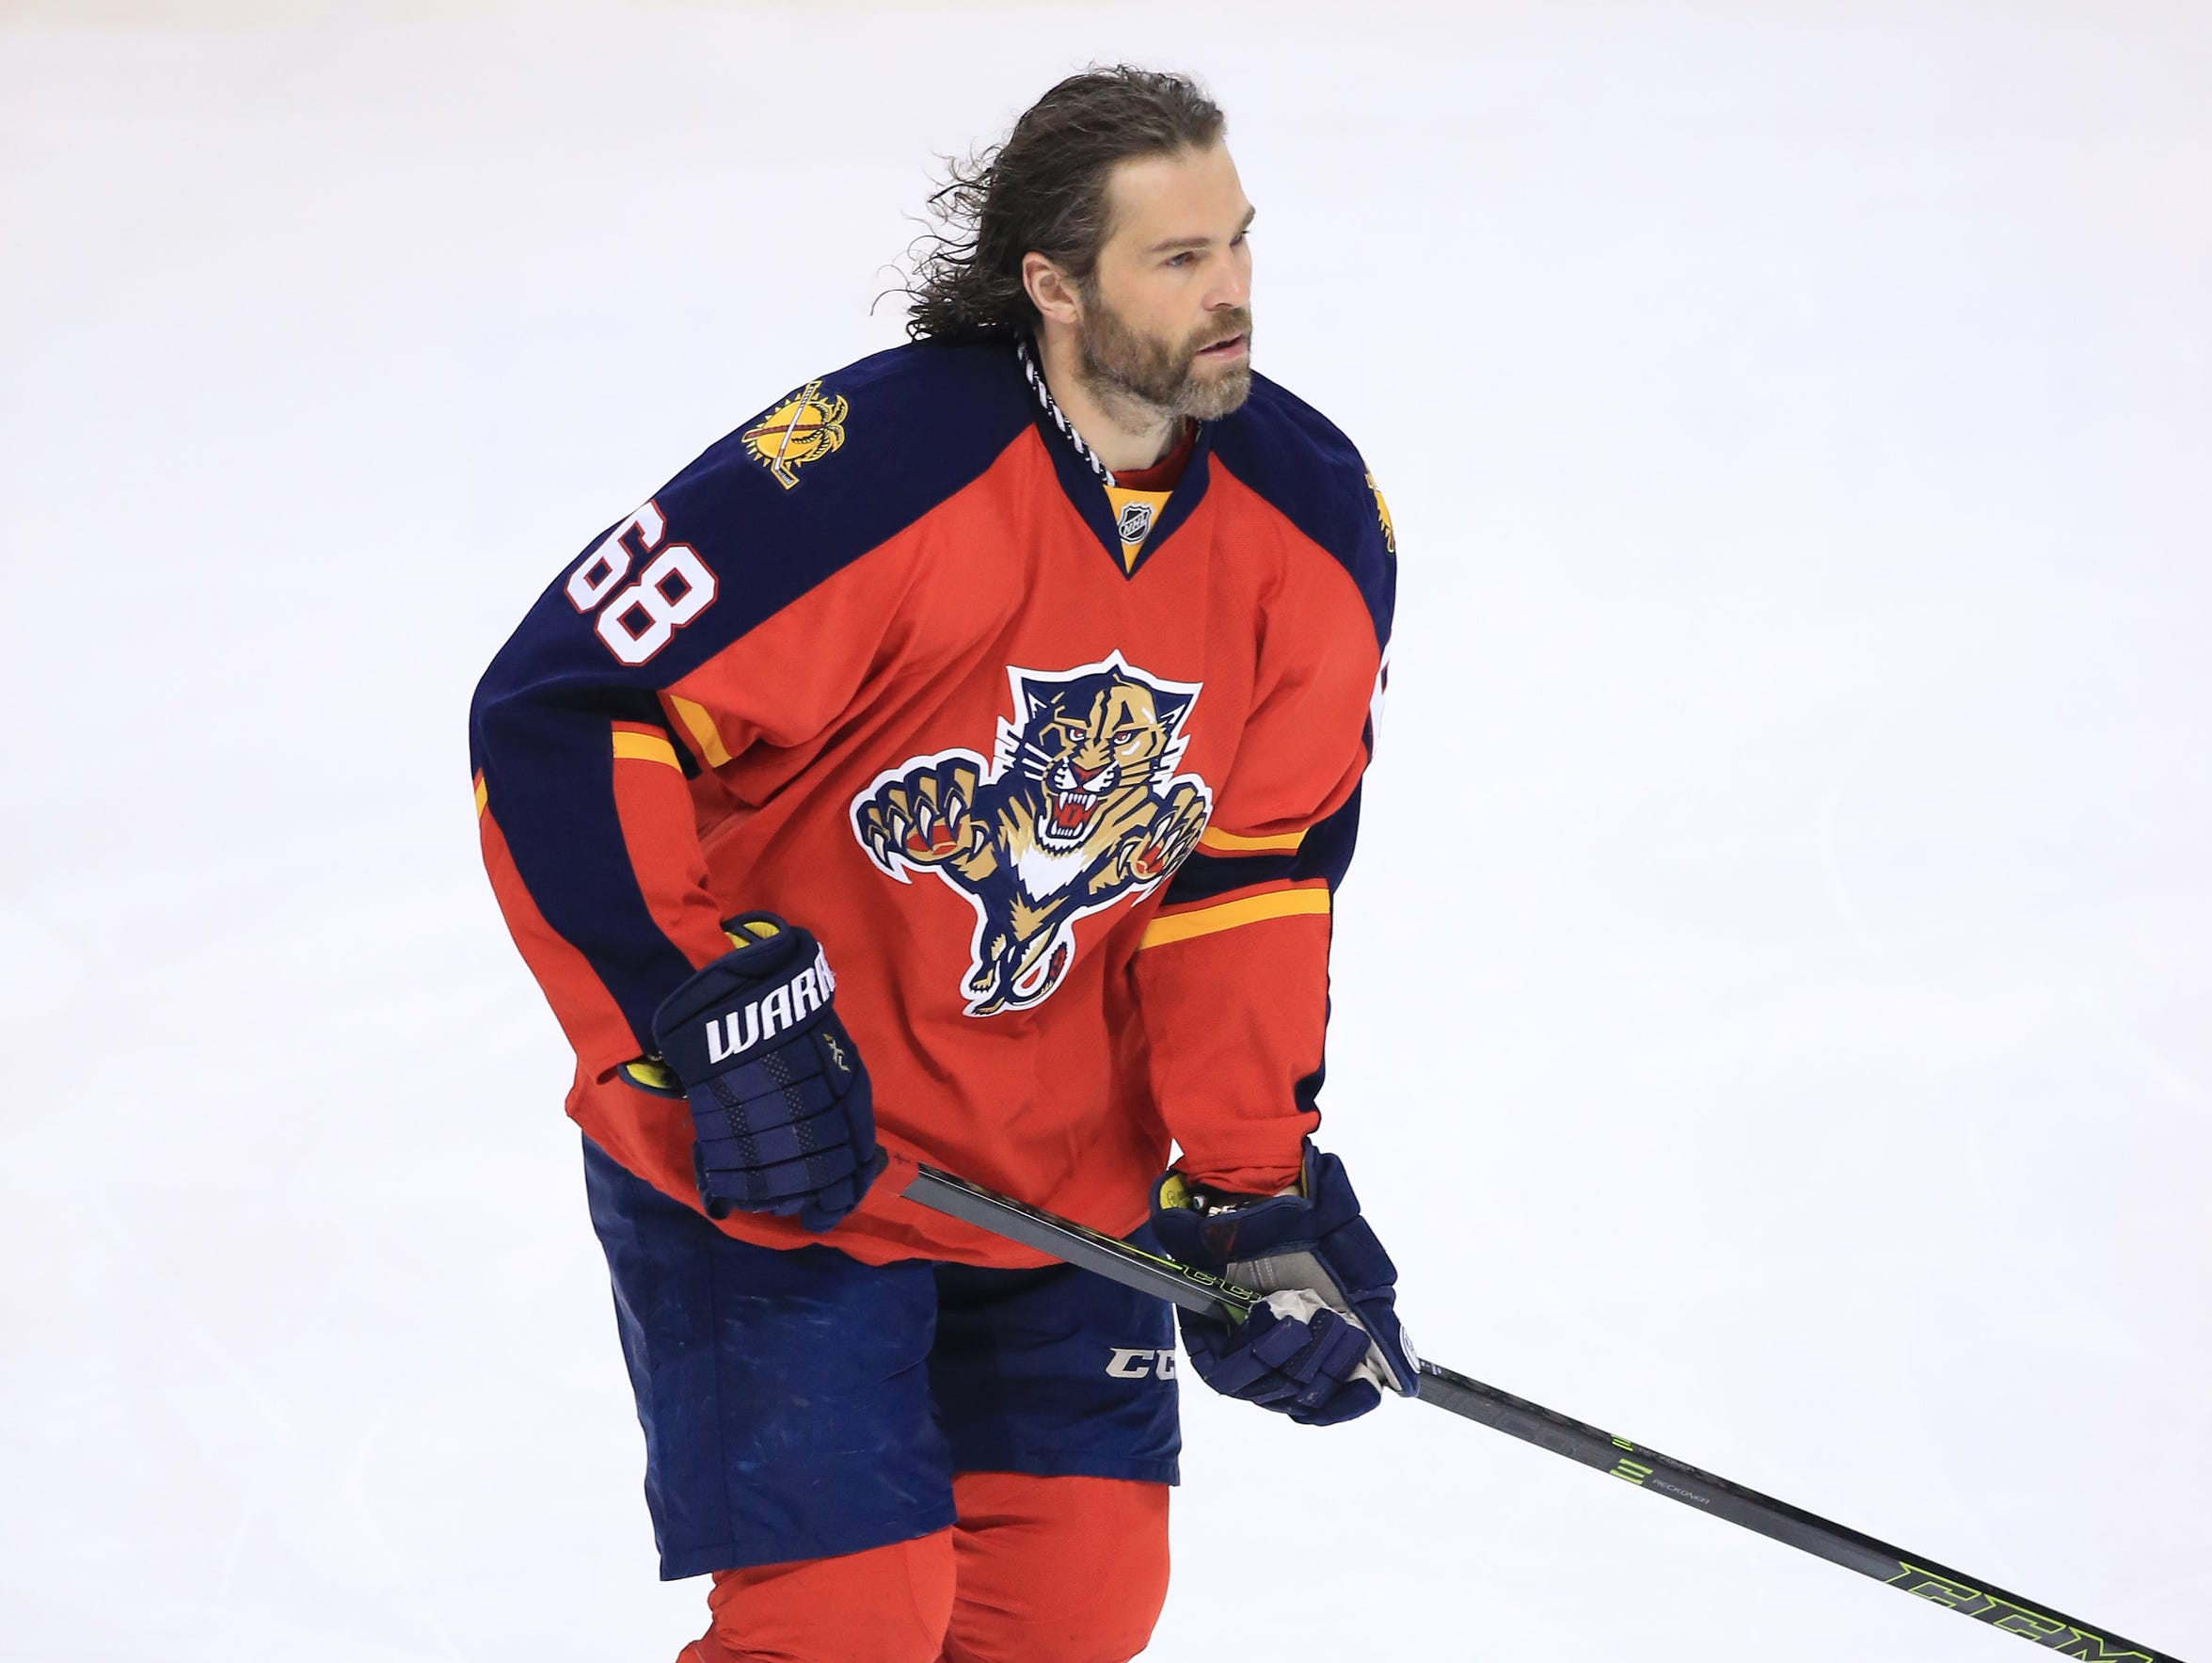 Florida Panthers winger Jaromir Jagr will turn 45 years